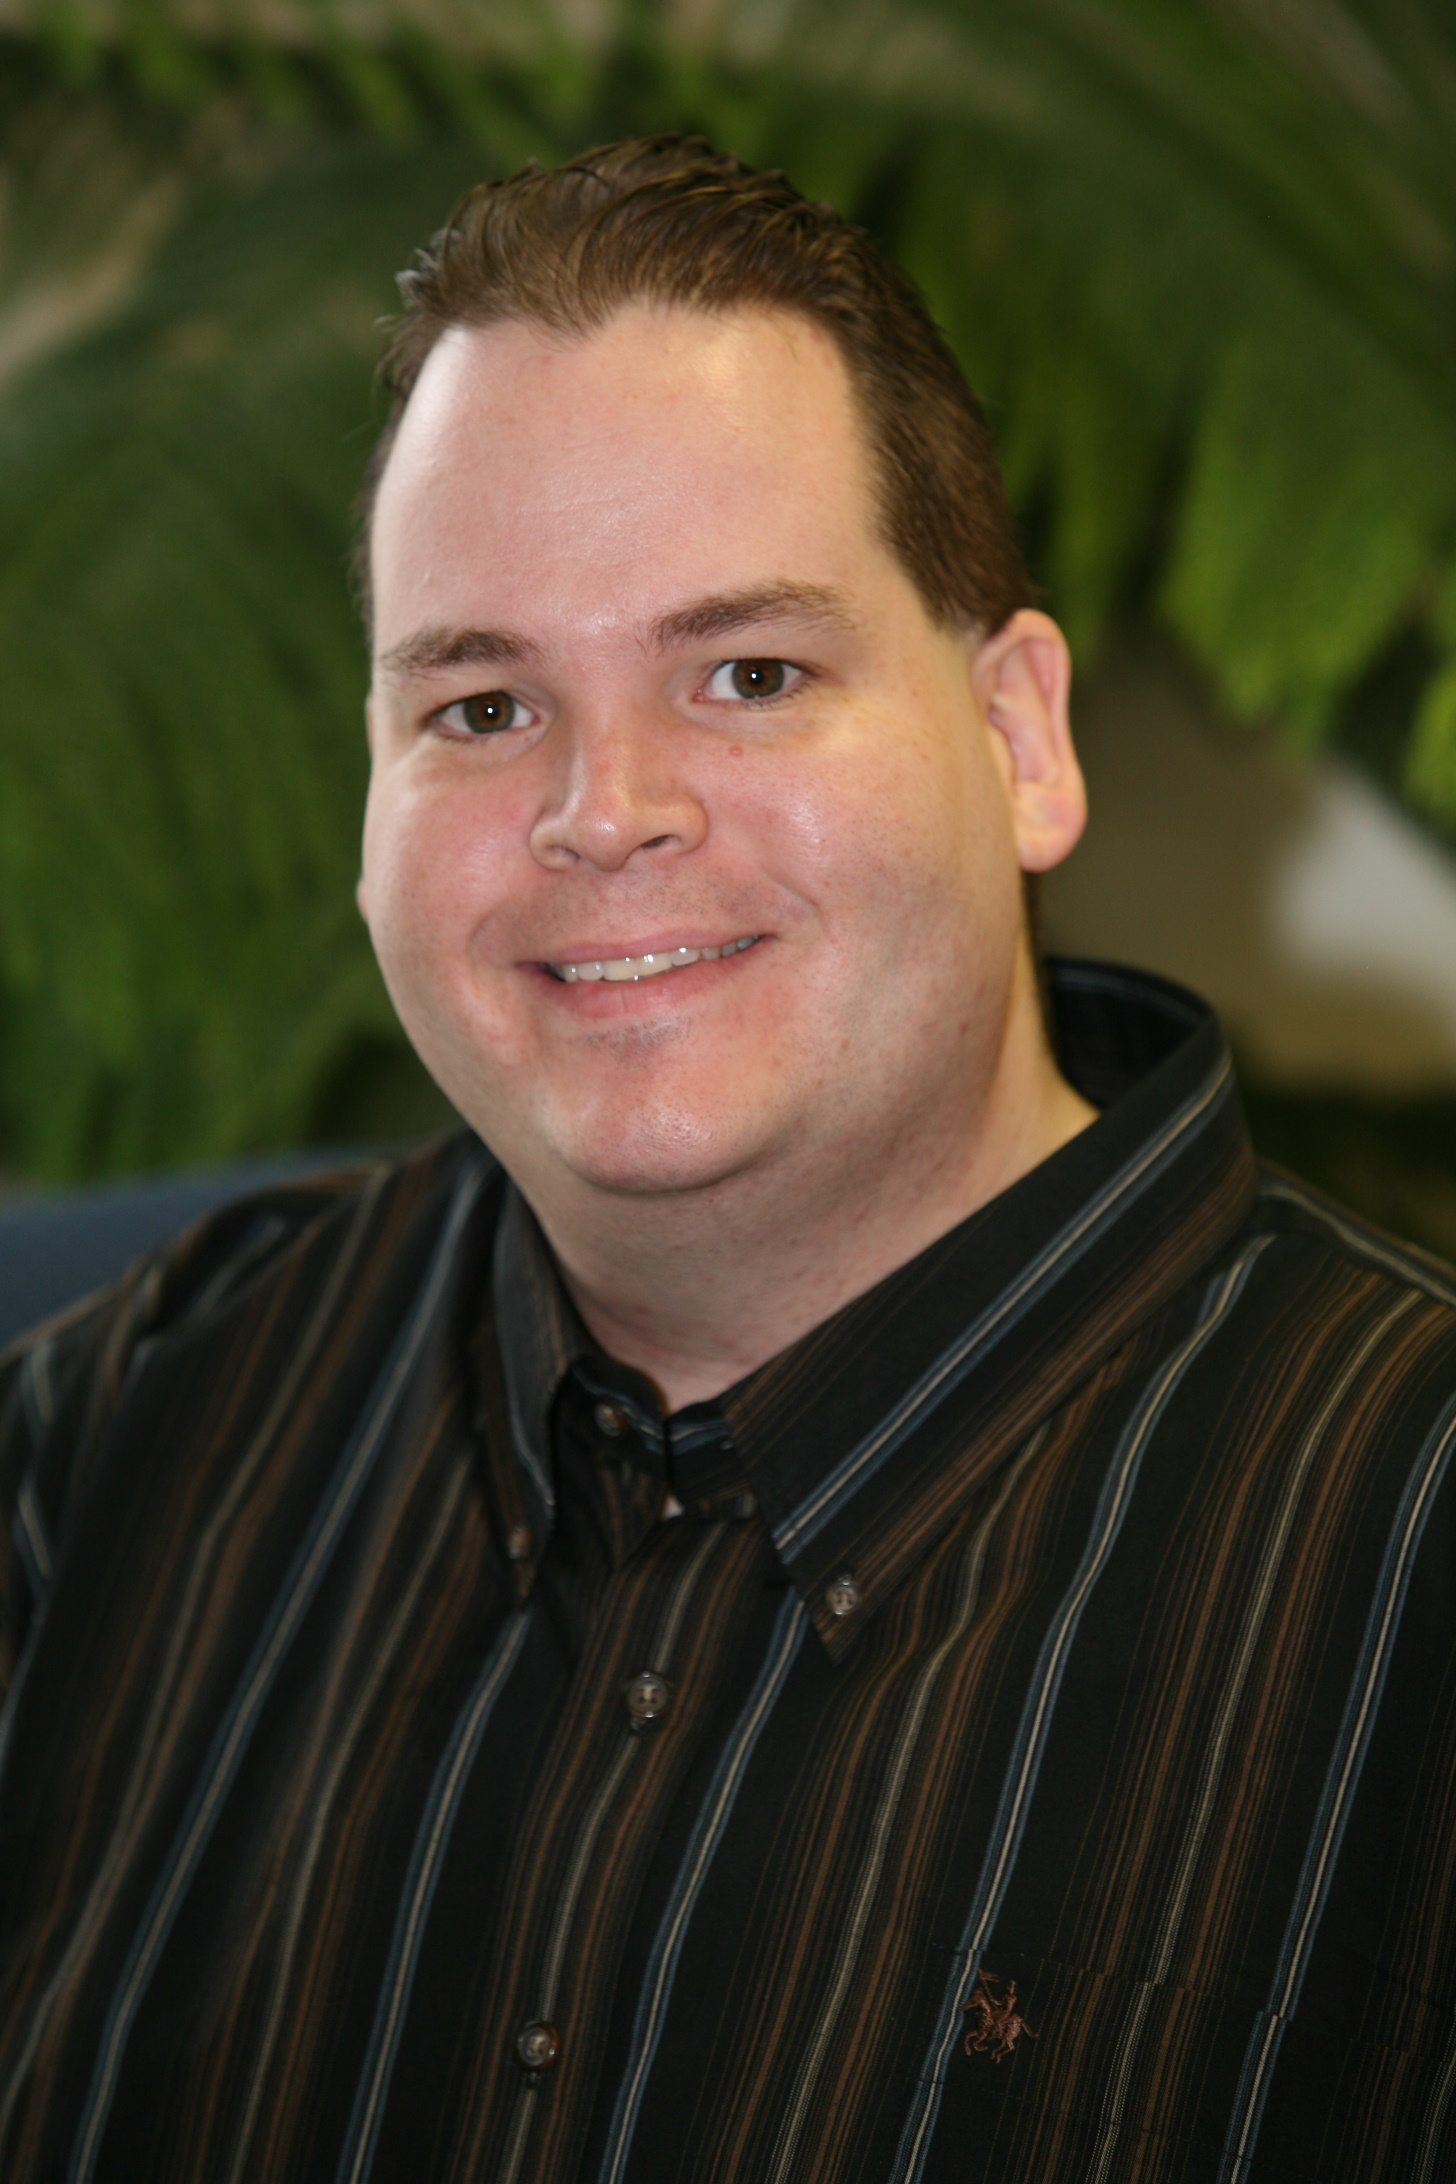 Brandon Jordan, ERA American Real Estate, your Northwest Florida Realtor.